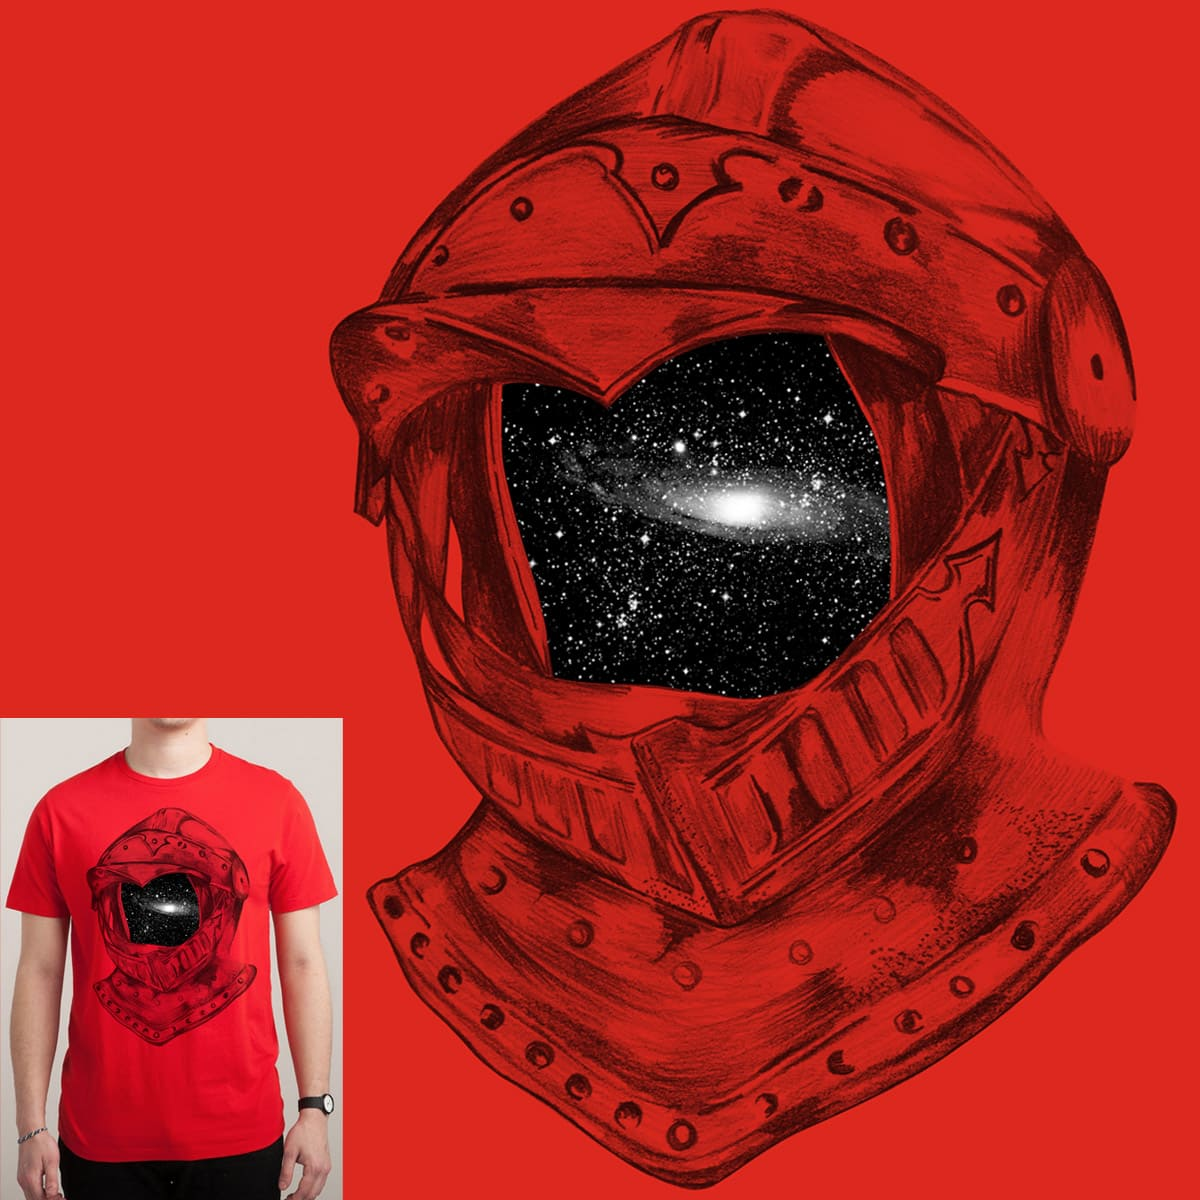 The Red Knight by mainial on Threadless